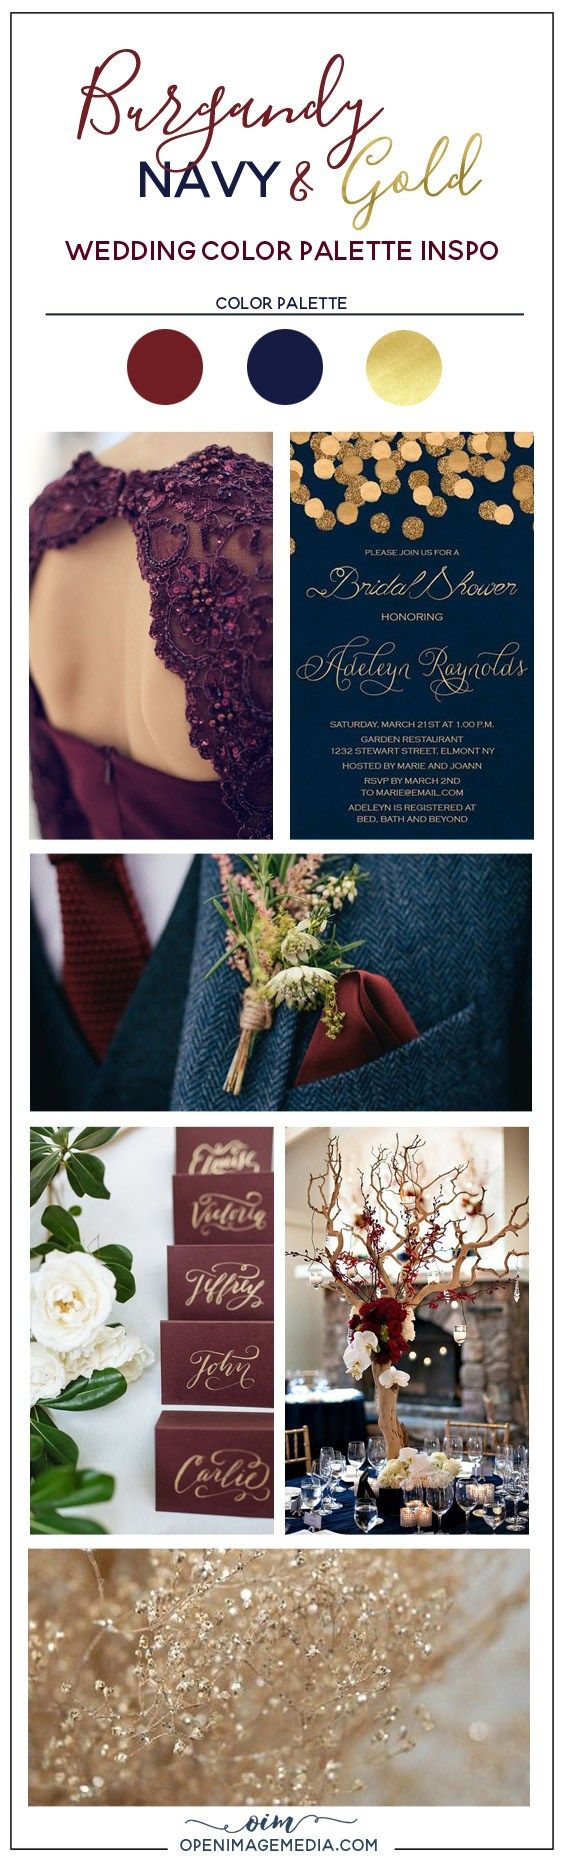 Burgundy Navy and Gold Wedding Color Palette #RePin by AT Social Media Marketing - Pinterest Marketing Specialists ATSocialMedia.co.uk